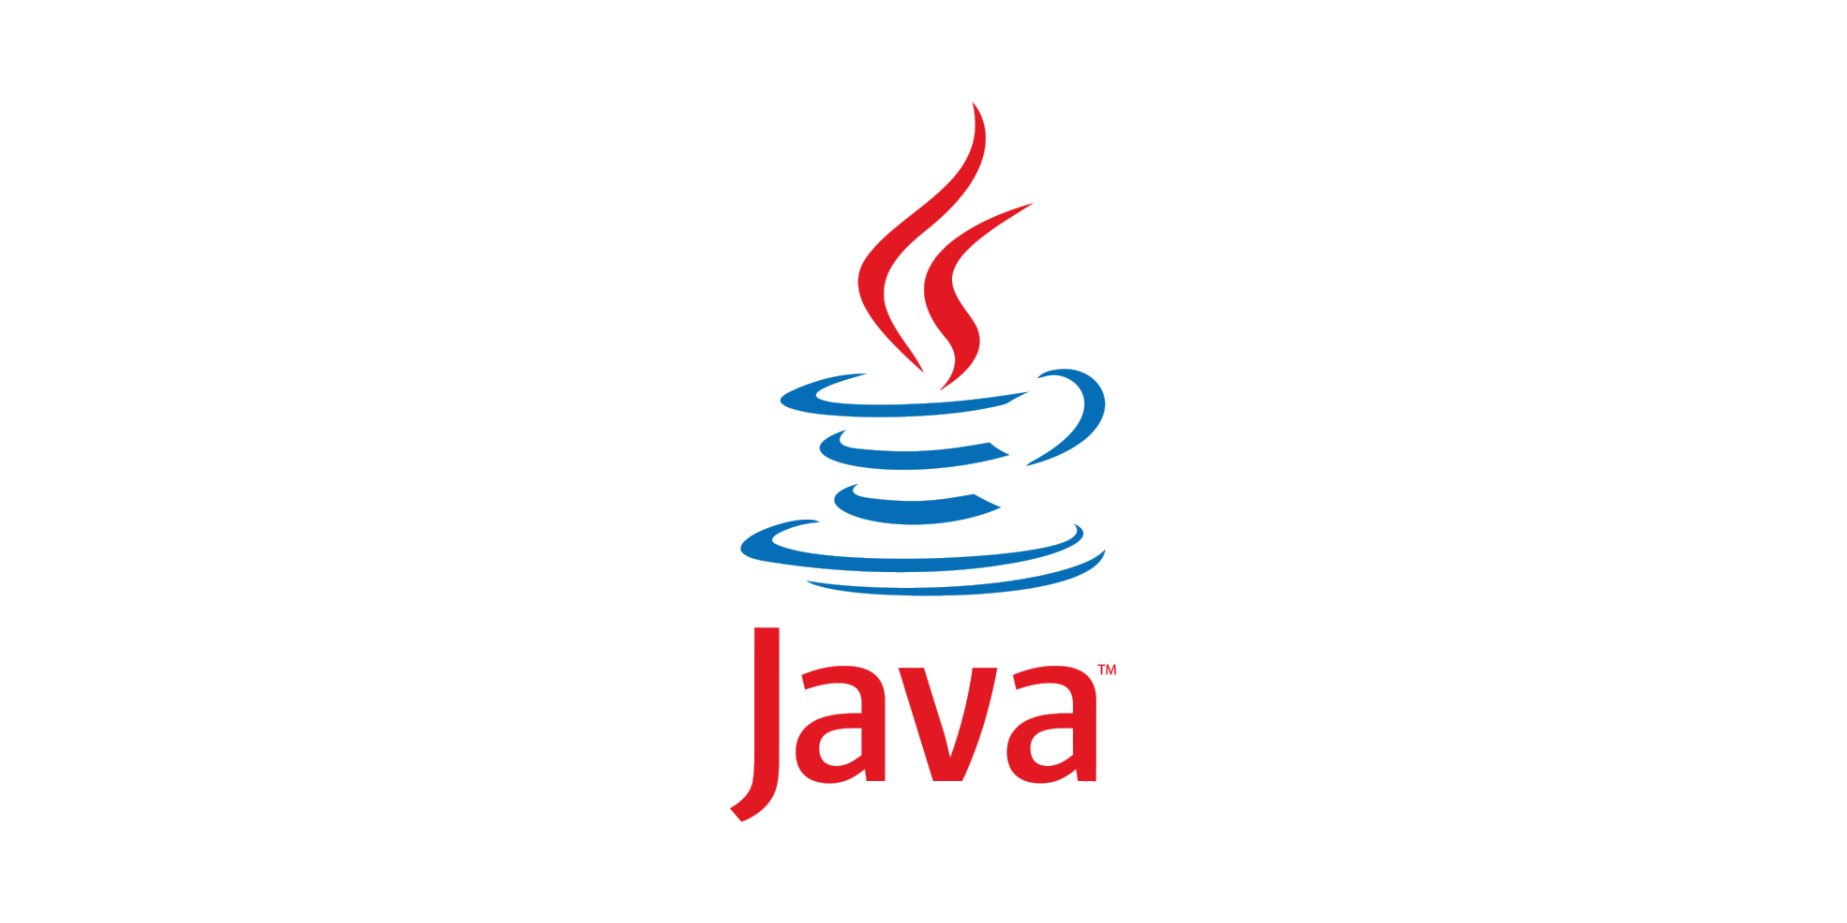 A screen showing Java's logo.